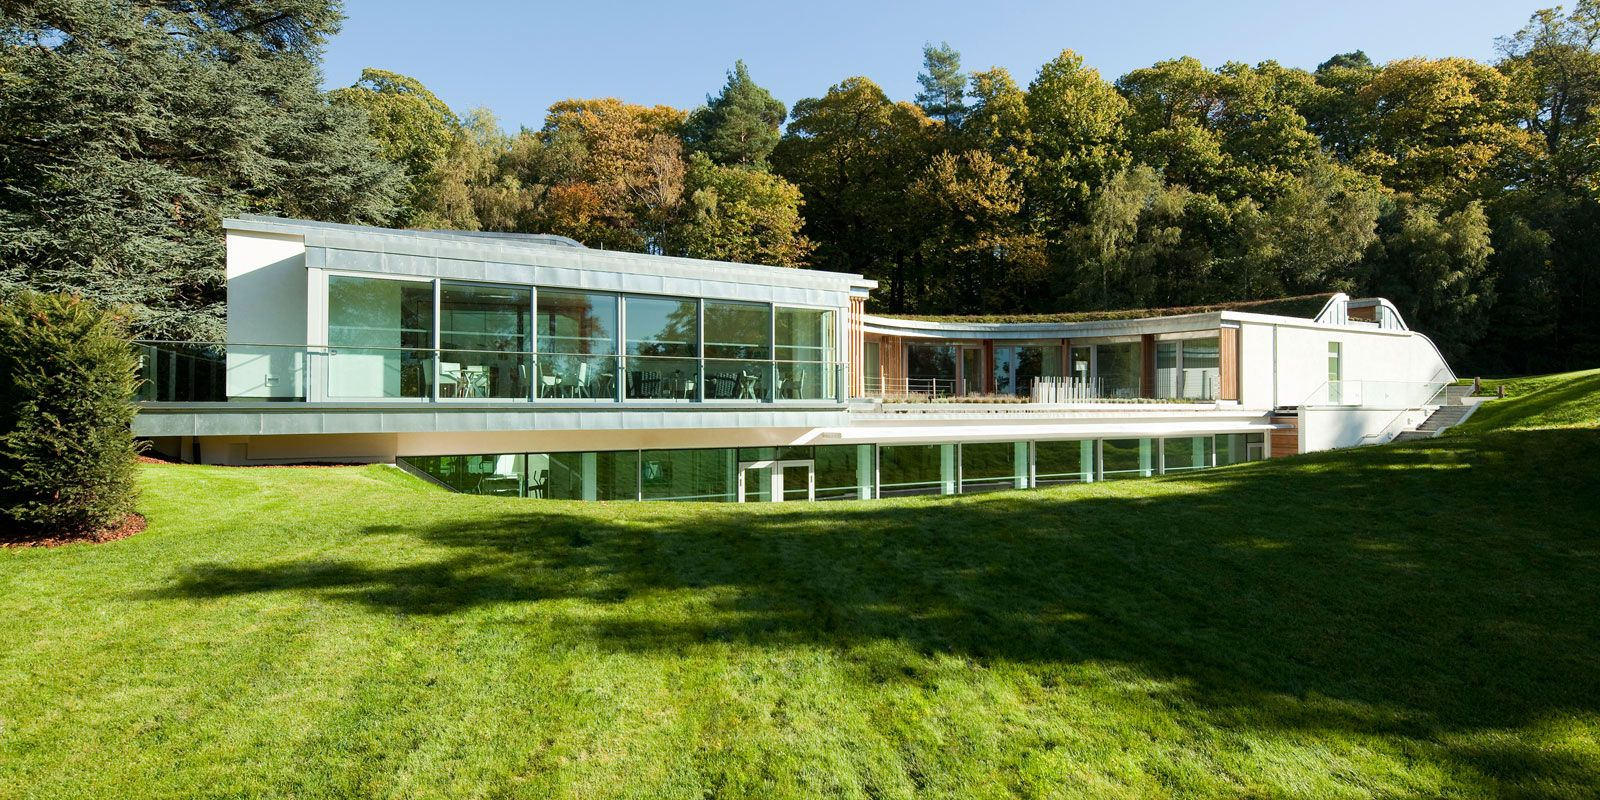 """<p><a href=""""https://www.dorchestercollection.com/"""" target=""""_blank"""">The Dorchester Collection</a>'s countryside property, Coworth Park, is a meticulous 18<sup>th</sup> century country house located in Ascot. The serenity of the location combined with the elegance of its five-star spa make this the perfect weekend getaway from the busy London bustle.</p><p><br></p><p><em><a href=""""https://www.dorchestercollection.com/en/ascot/coworth-park/"""" target=""""_blank"""">Coworth Park</a>; Blacknest Rd, Ascot, Berkshire SL5 7SE, </em><em>+44 (0)1344 638 530.</em></p>"""